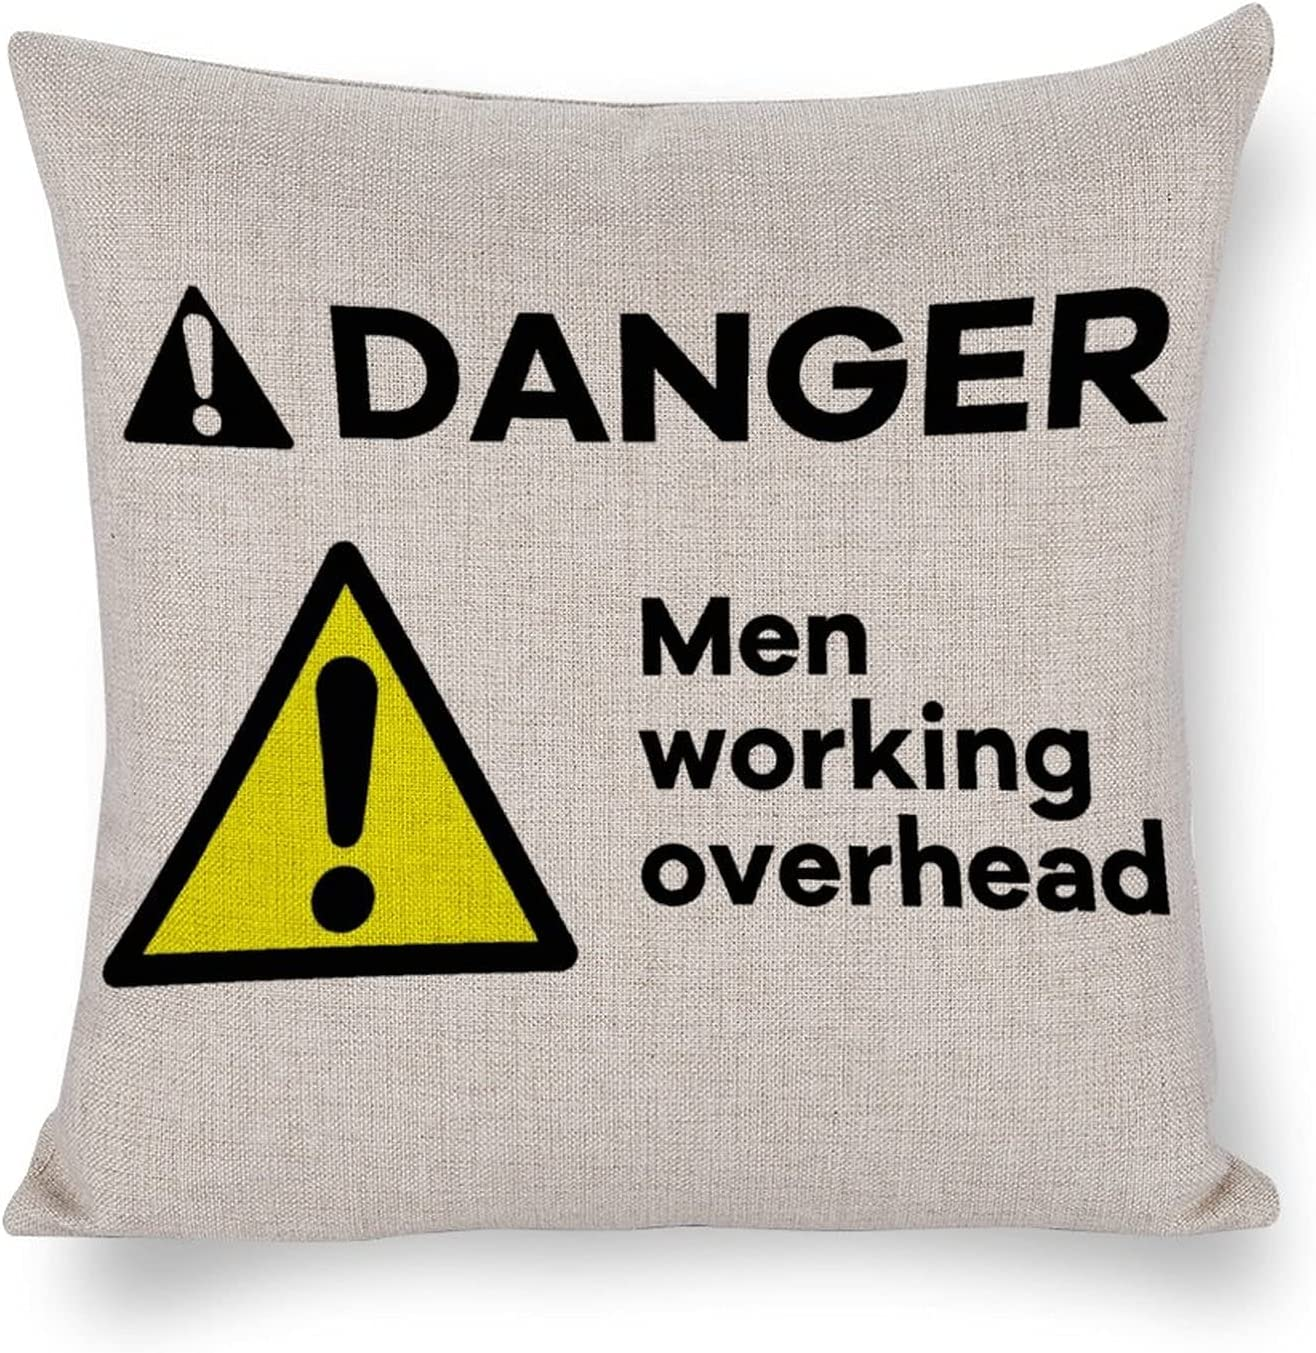 Super sale period limited UTF4C Men Working Outlet ☆ Free Shipping Overhead Danger Cotton Linen Cushion Home Sofa